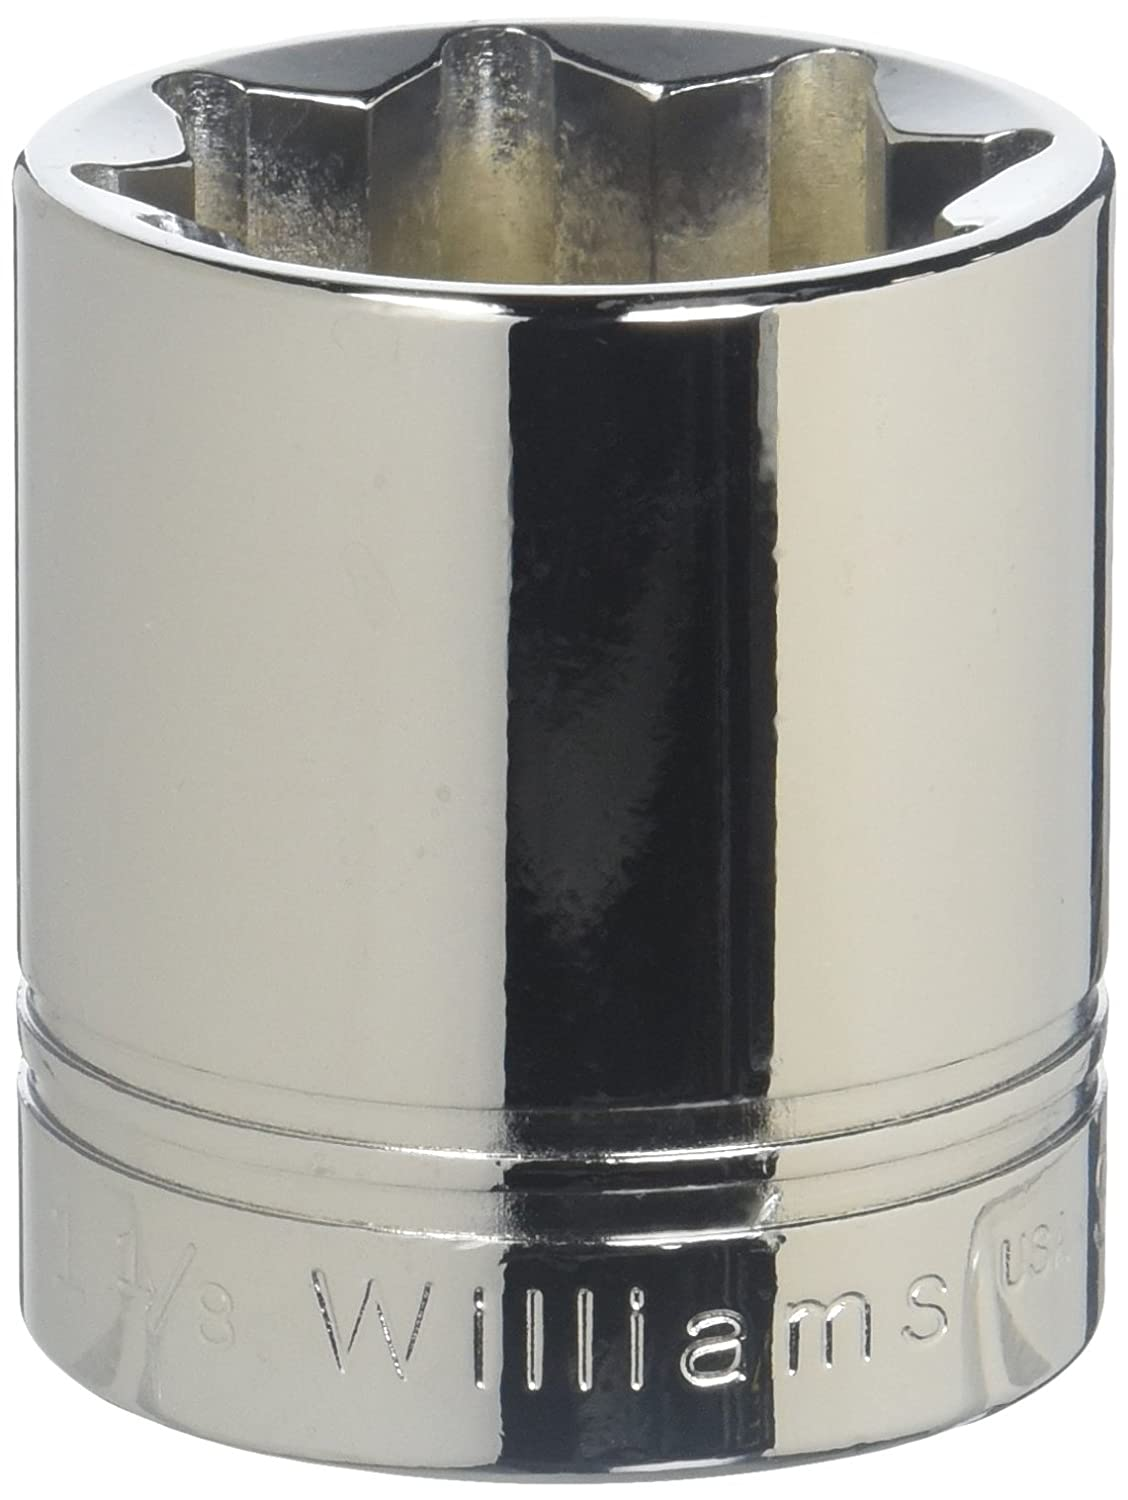 Williams ST-619 1/2 Drive Shallow Socket, 6 Point, 19/32' 19/32 JH Williams Tool Group